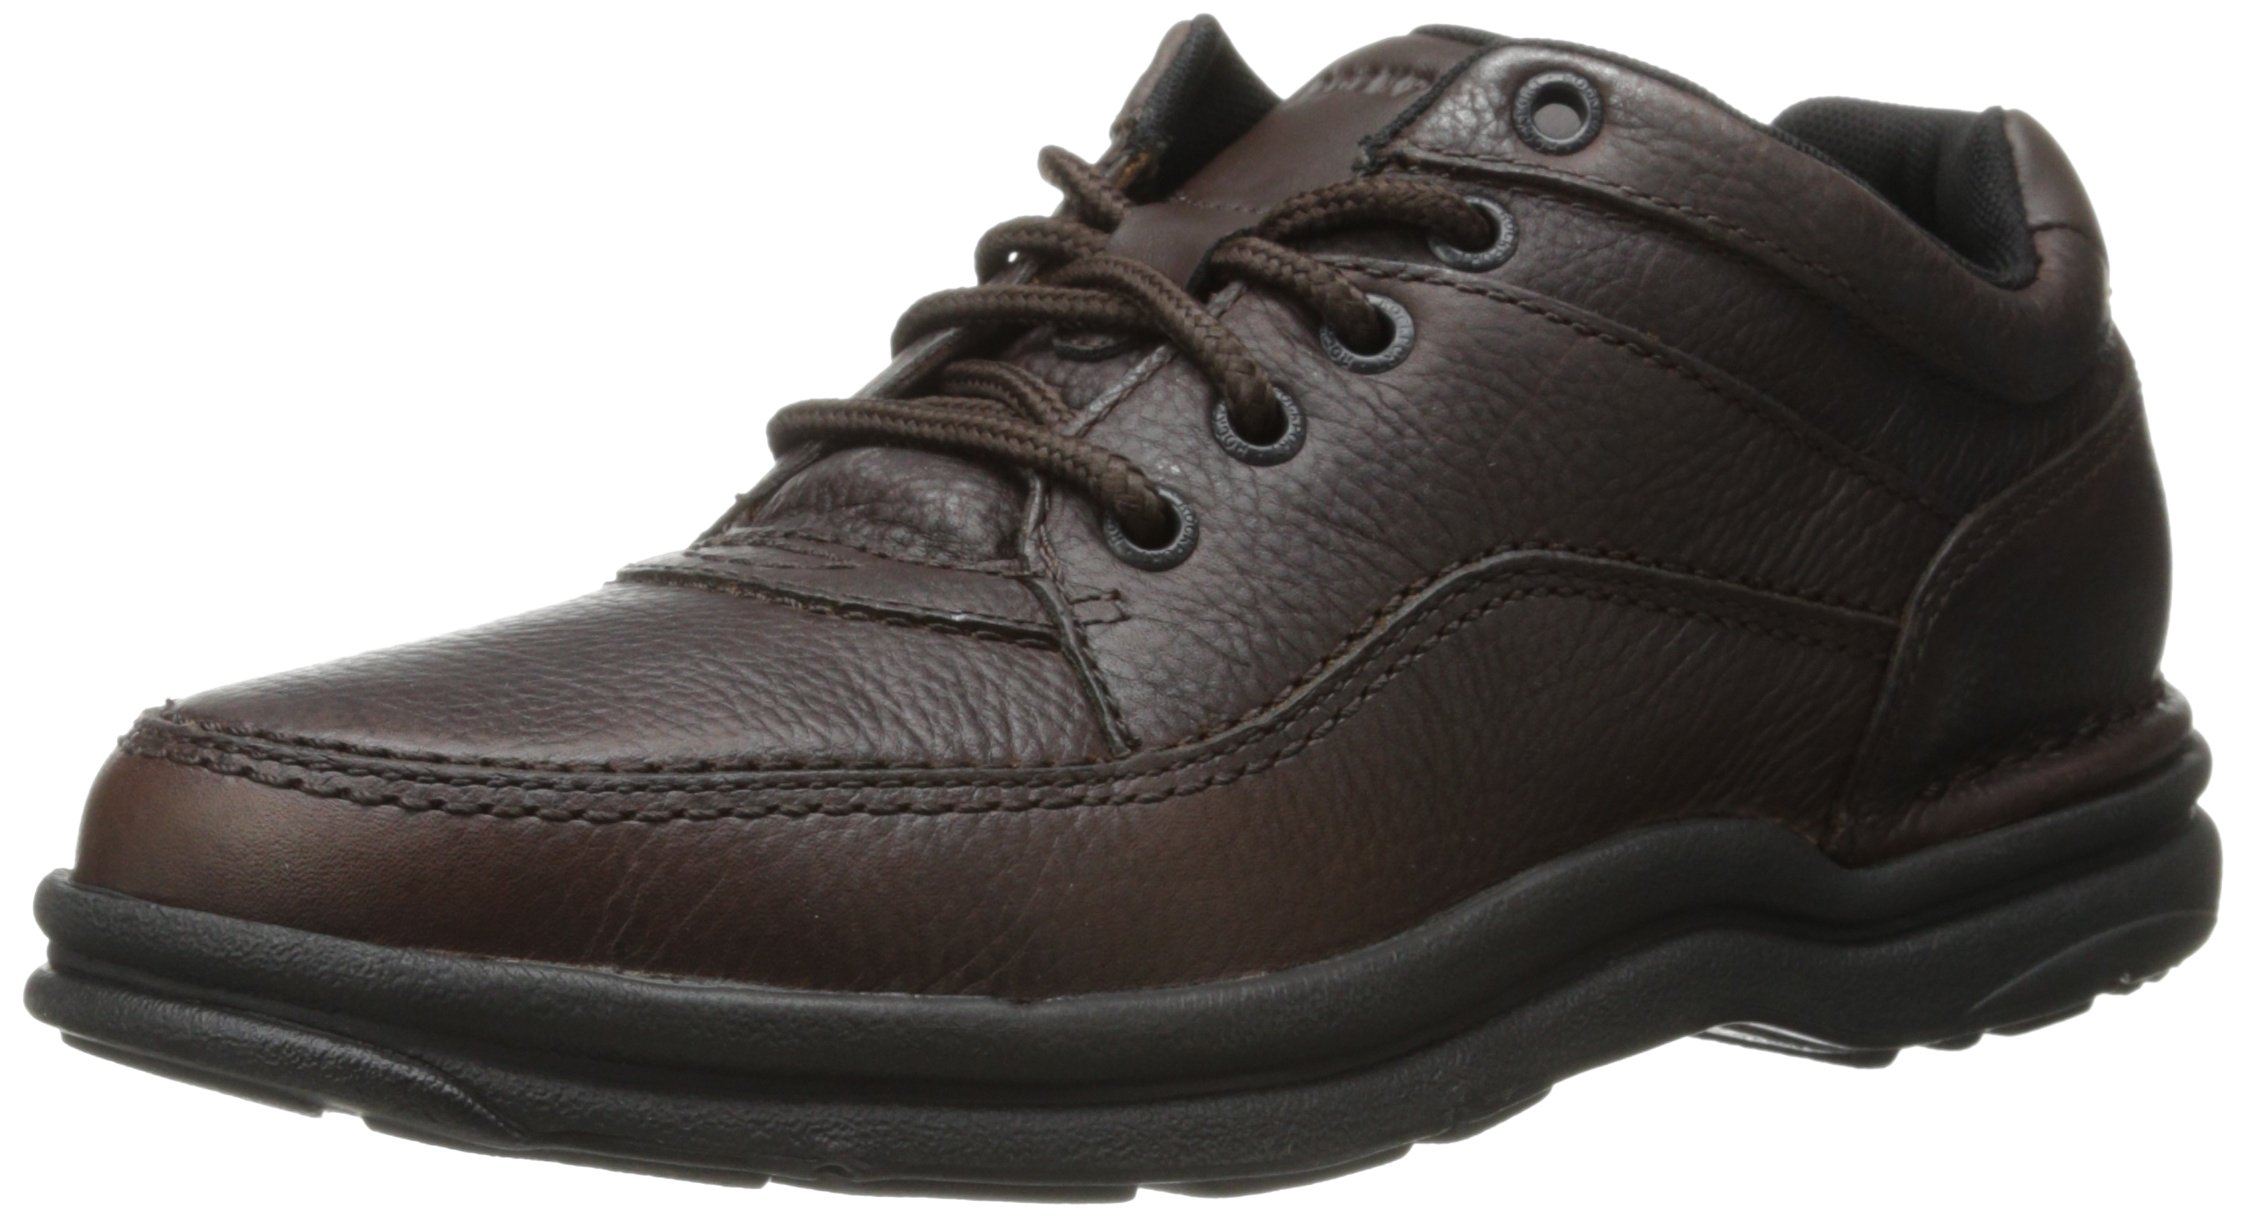 Rockport Men's World Tour Classic Walking Shoe